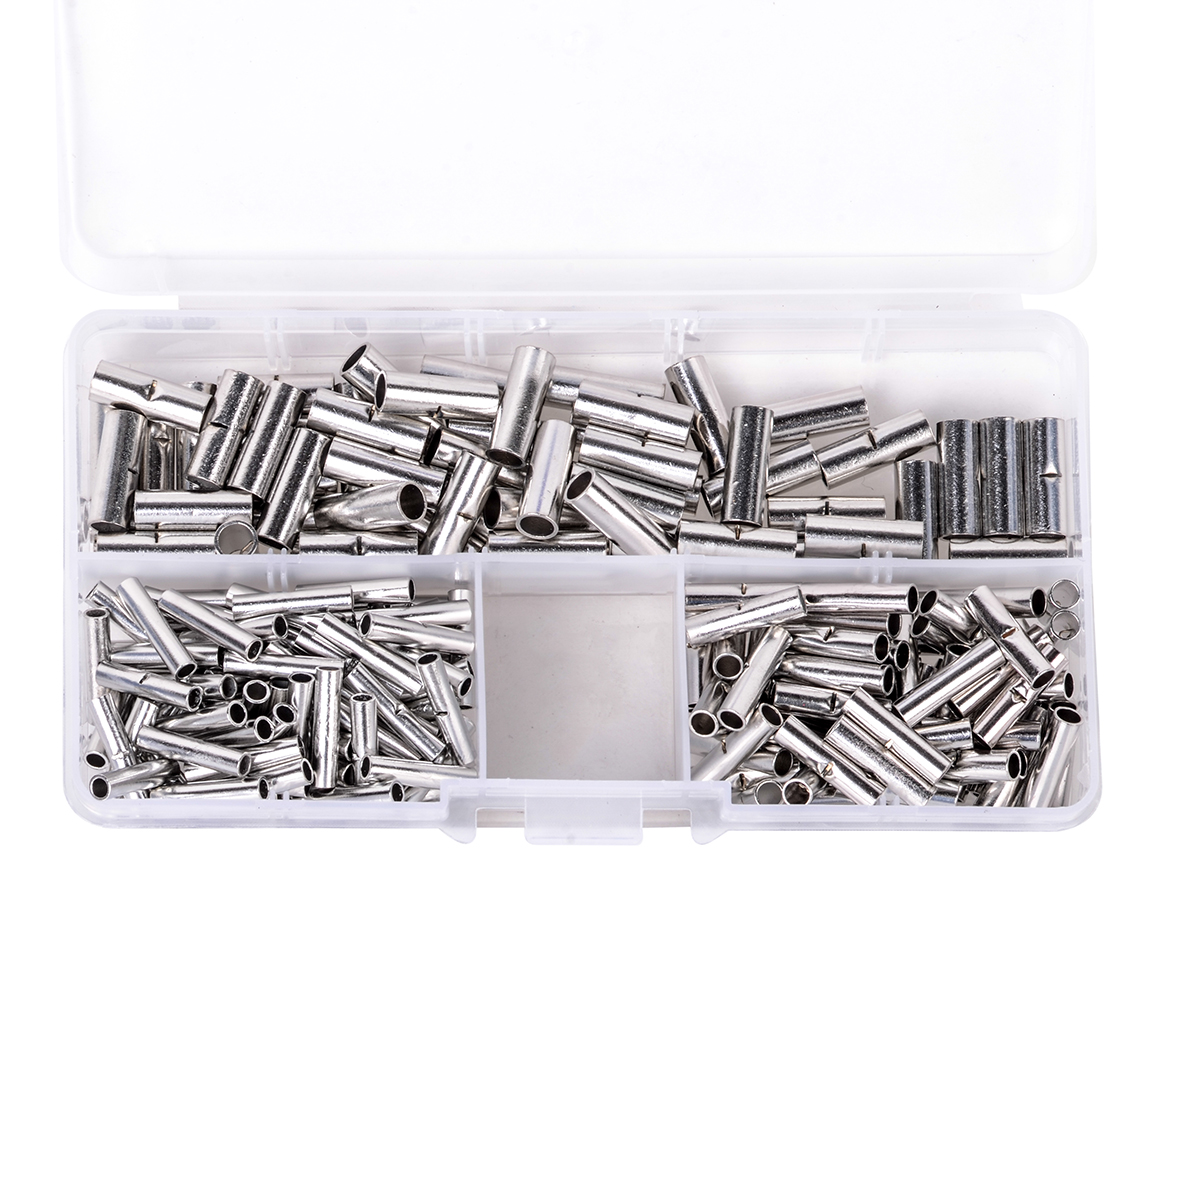 200pcs Copper Butt Splice Connectors Solder Crimp Electrical Cable Wire Terminals 22-10AWG with Plastic Box 270pcs insulated crimp terminals wire connectors butt spade ring electrical assorted kit with plastic case